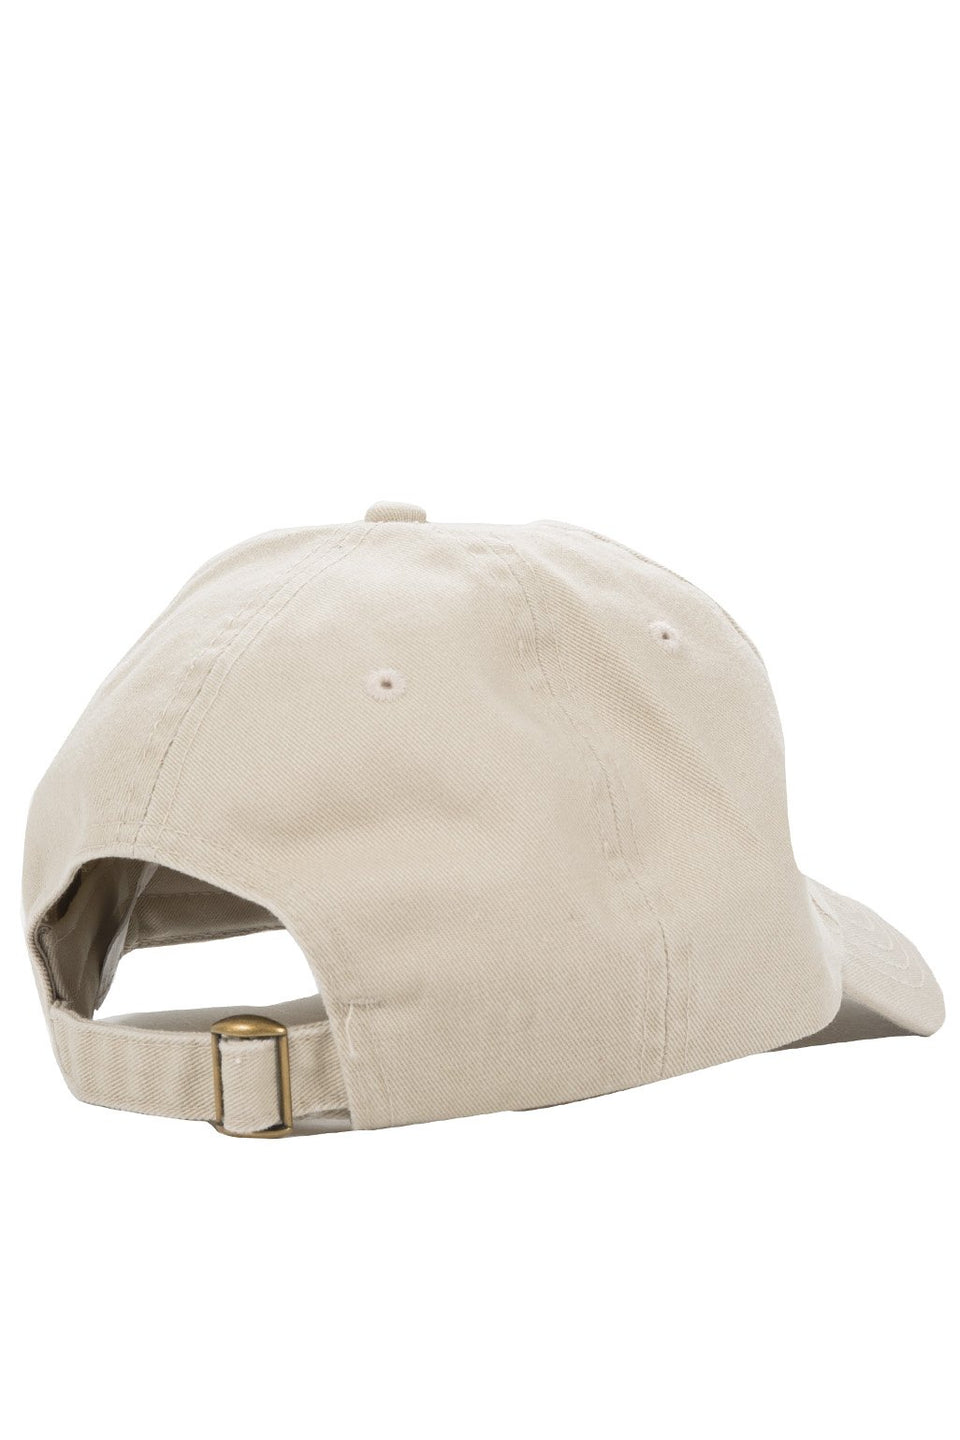 Adam Dad Hat